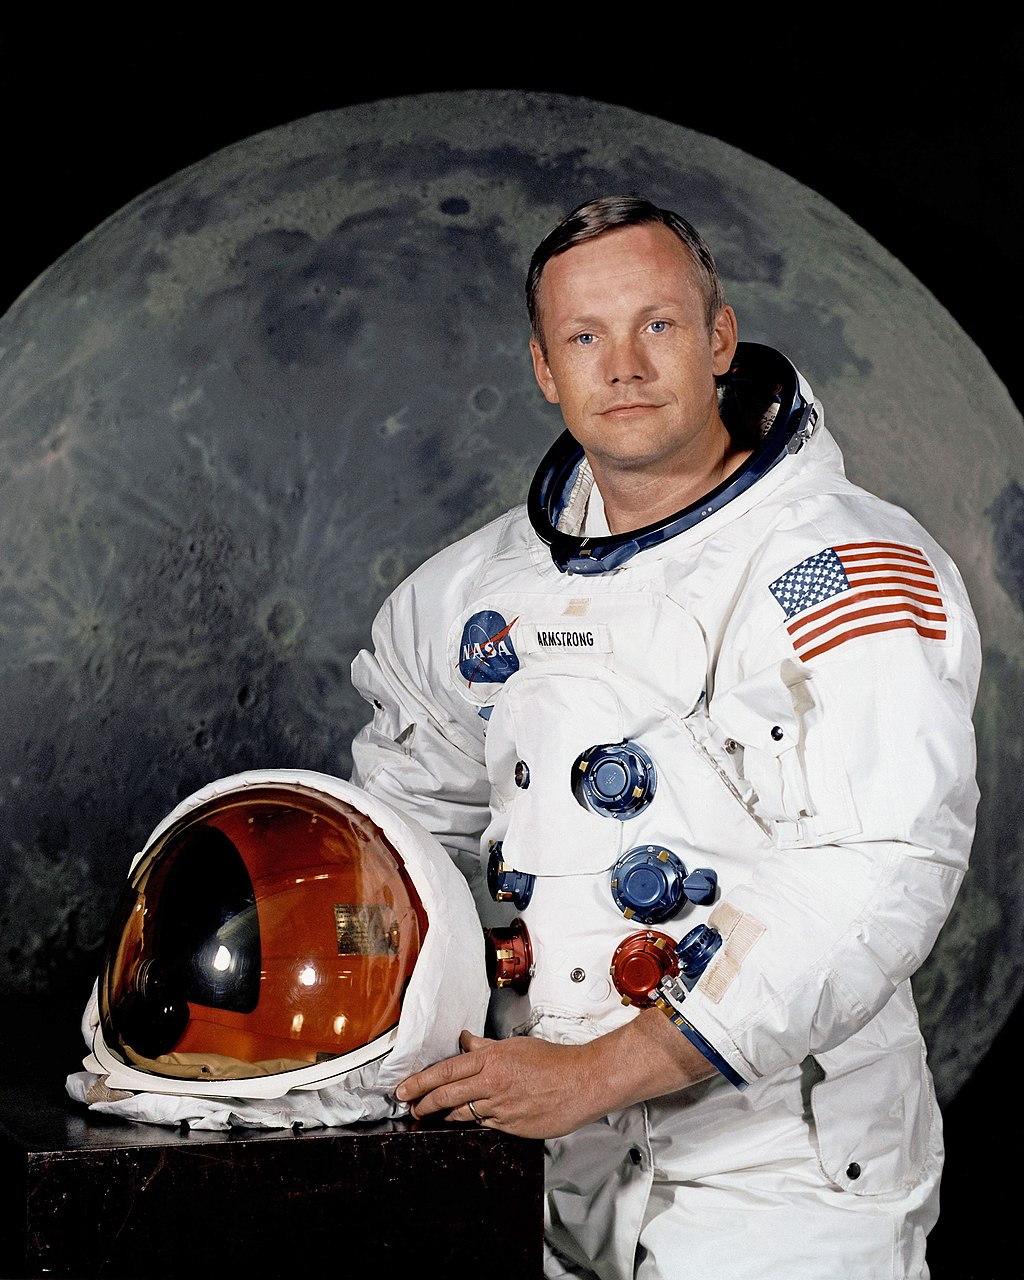 Armstrong posing in his spacesuit